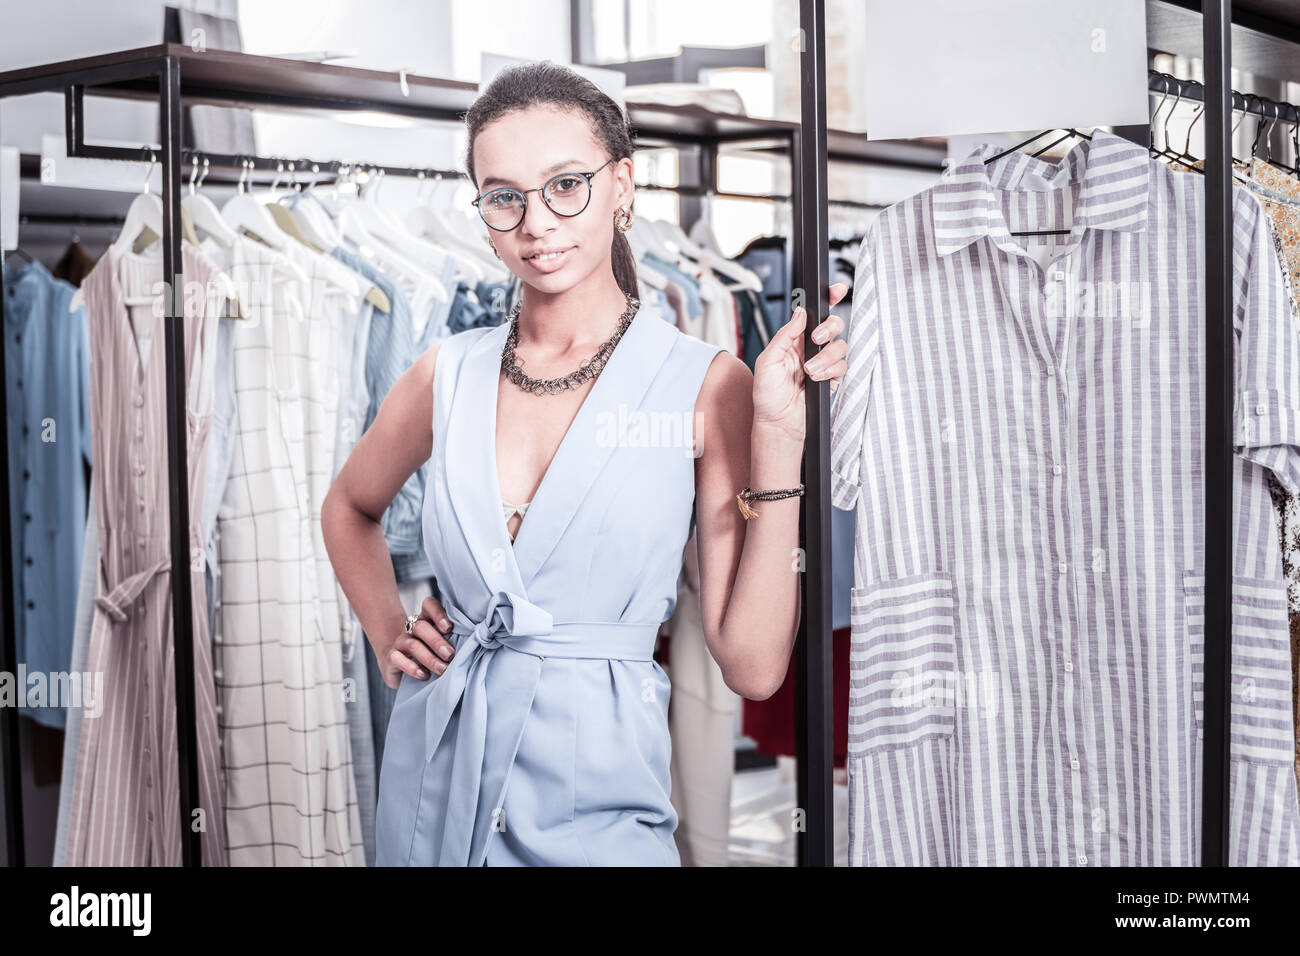 Owner of showroom feeling satisfied after presenting summer range of clothes - Stock Image